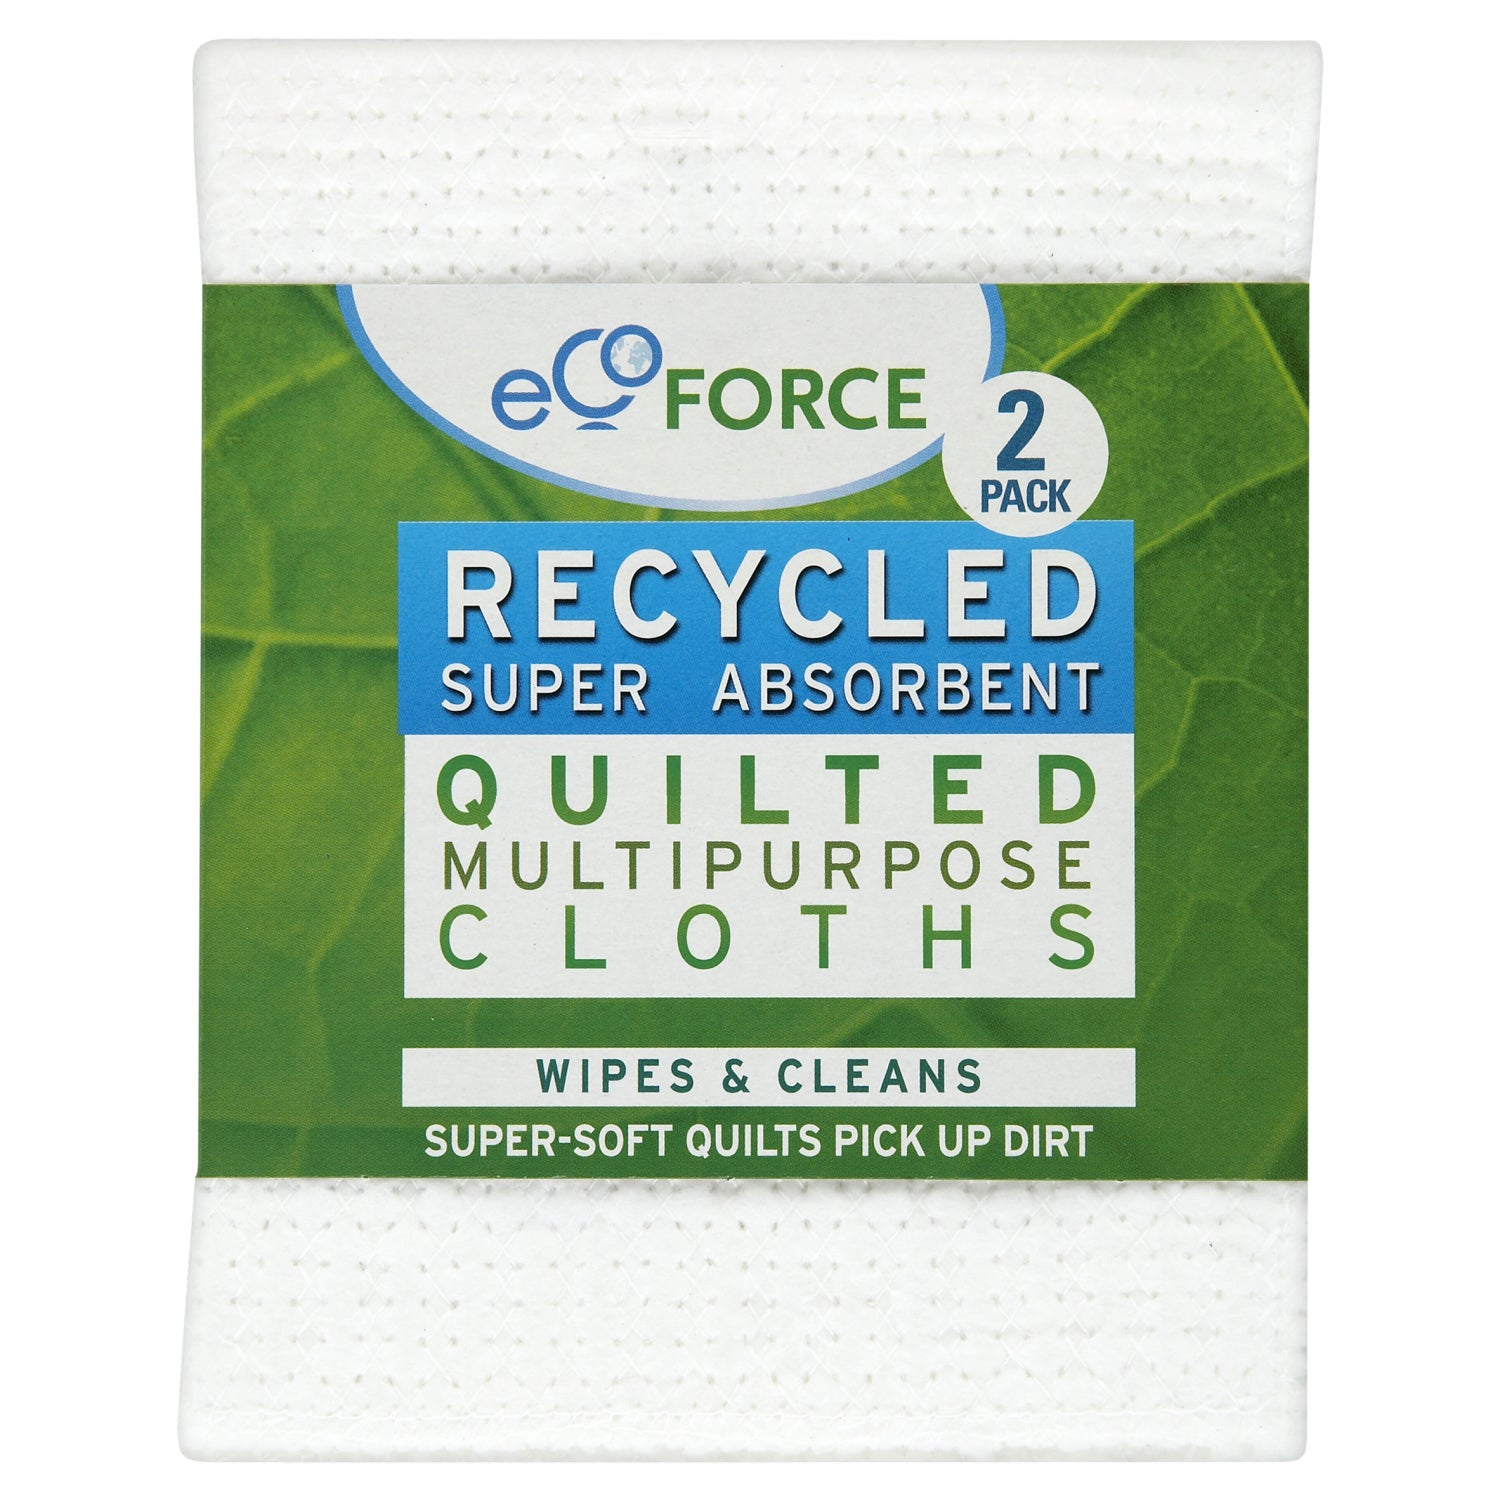 Pack of 2 EcoForce Recycled Super Absorbent Quilted Cloths